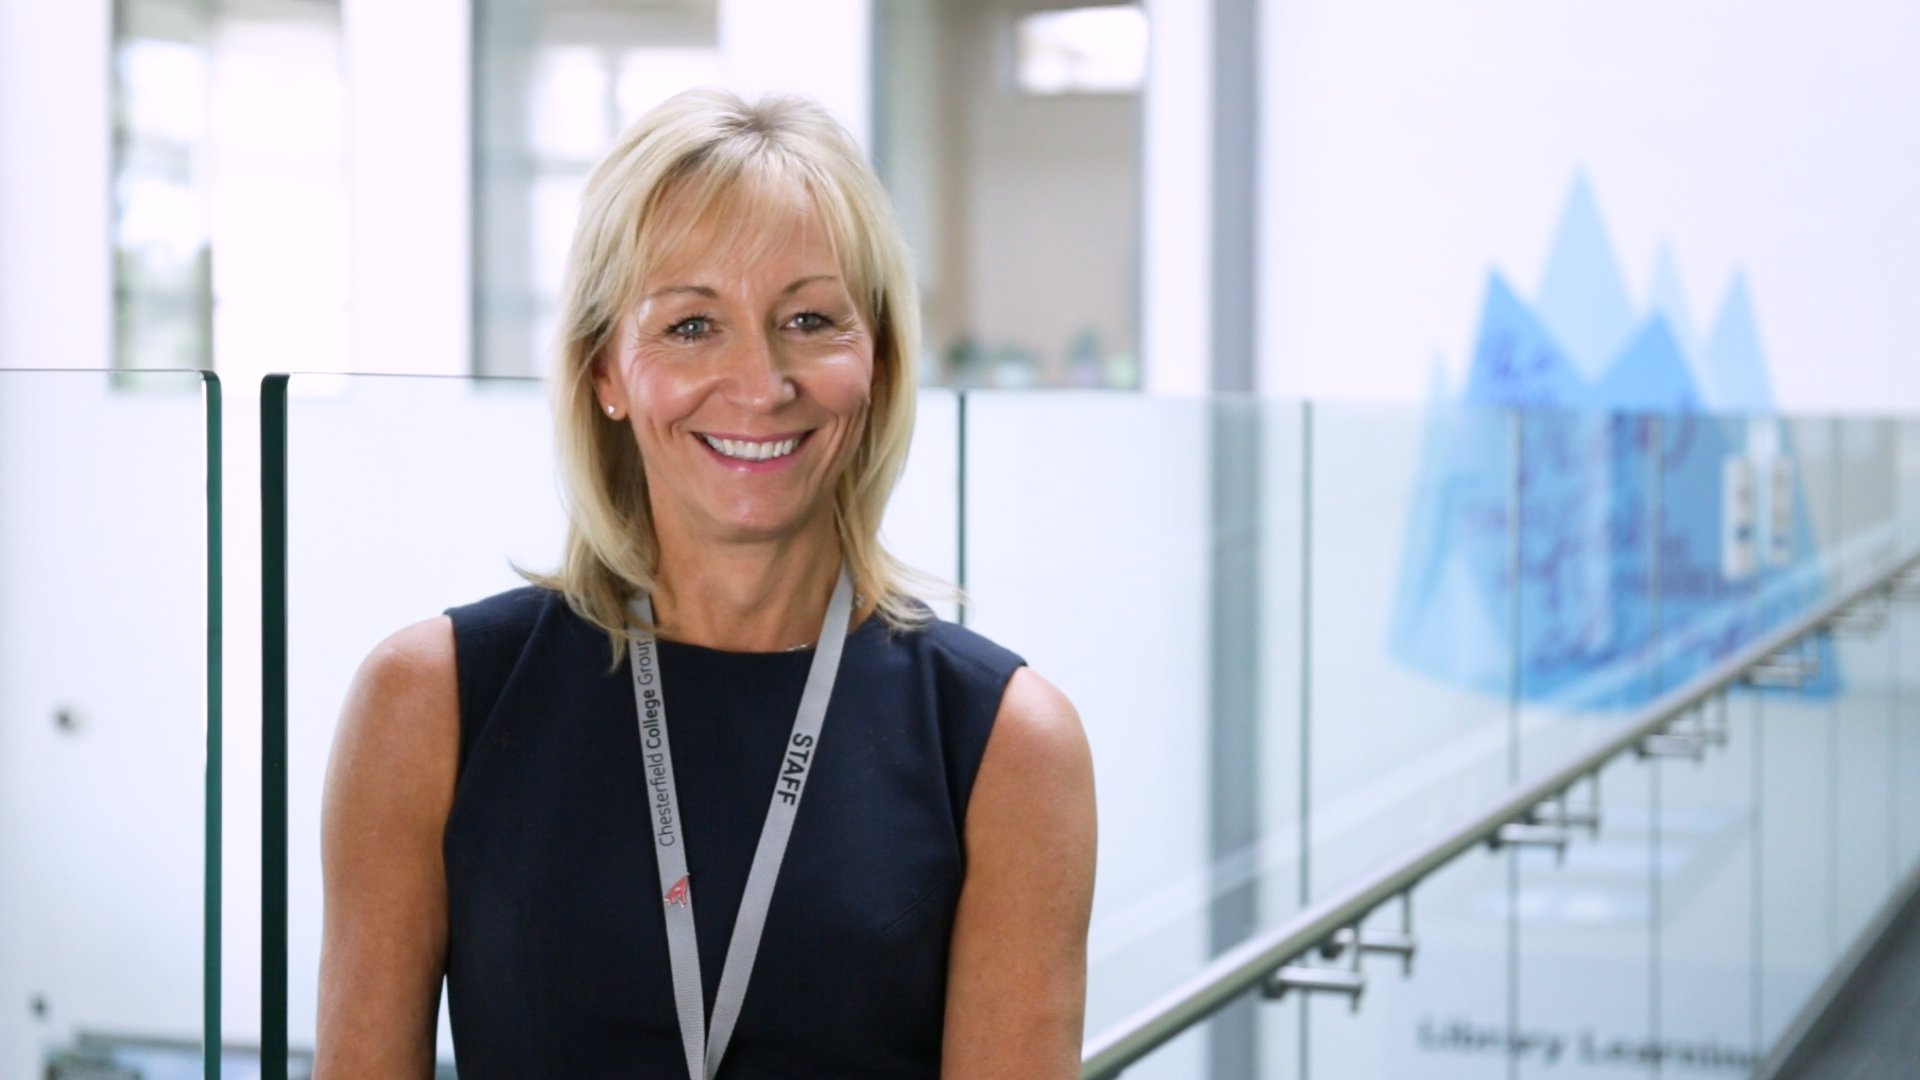 Chesterfield College Principal pledges to support employers to take advantage of the extension to the apprenticeship incentive scheme